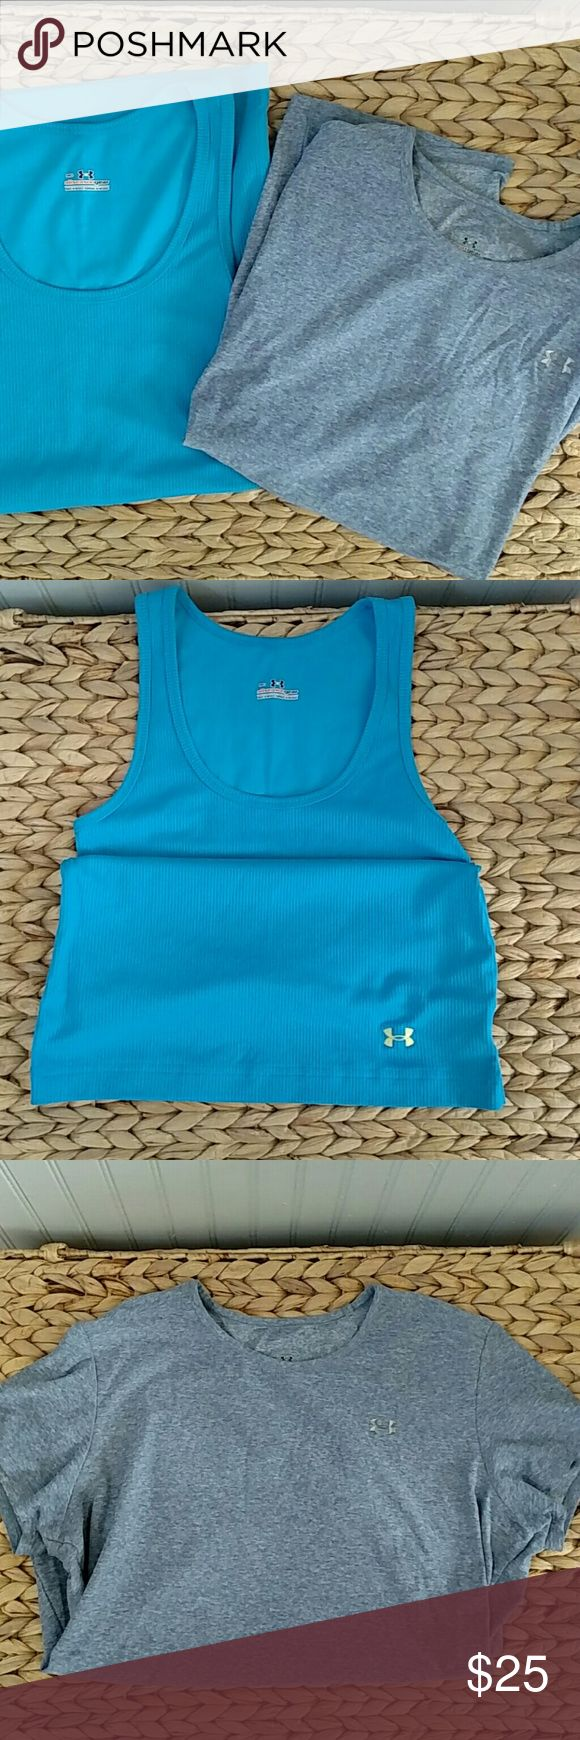 Under Armor Athletic Shirt Bundle Great bundle here! You get an Under Armor heat gear short sleeve shirt (size L) and an Under Armor all season gear tank top (size M)! This is a great deal! Both tops are in great condition! Under Armour Tops